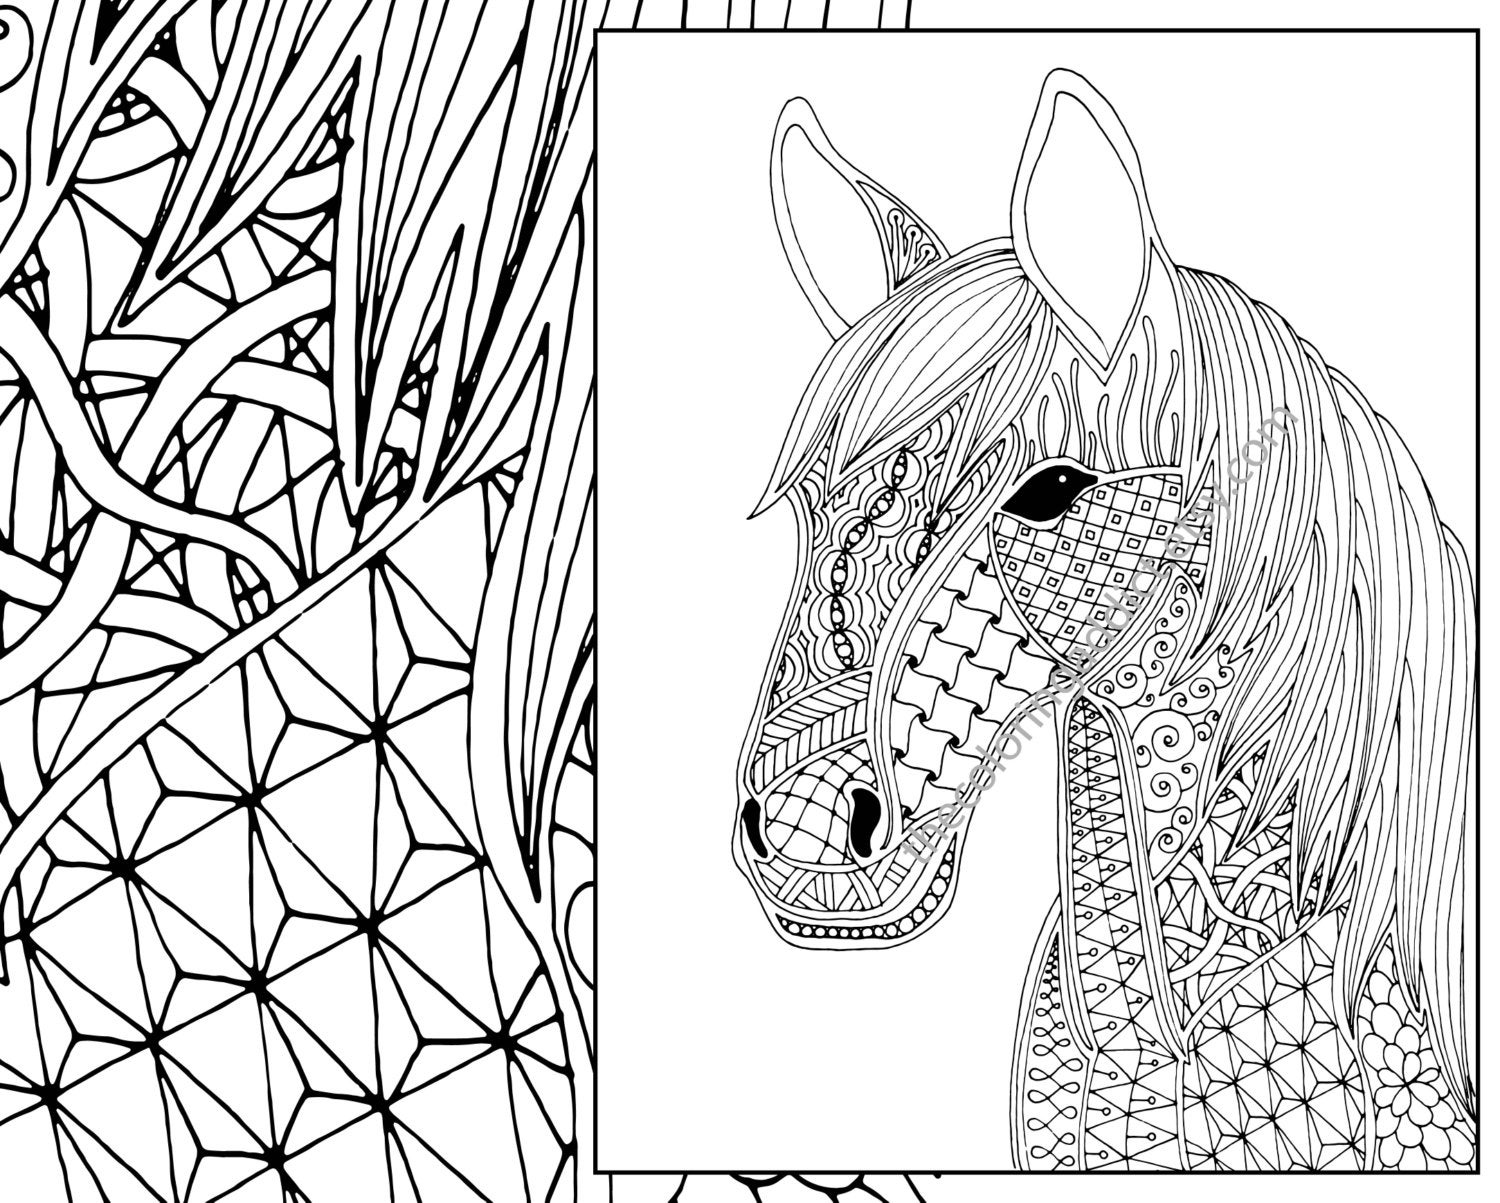 horse pics to color free horse coloring pages for adults kids cowgirl magazine horse pics color to